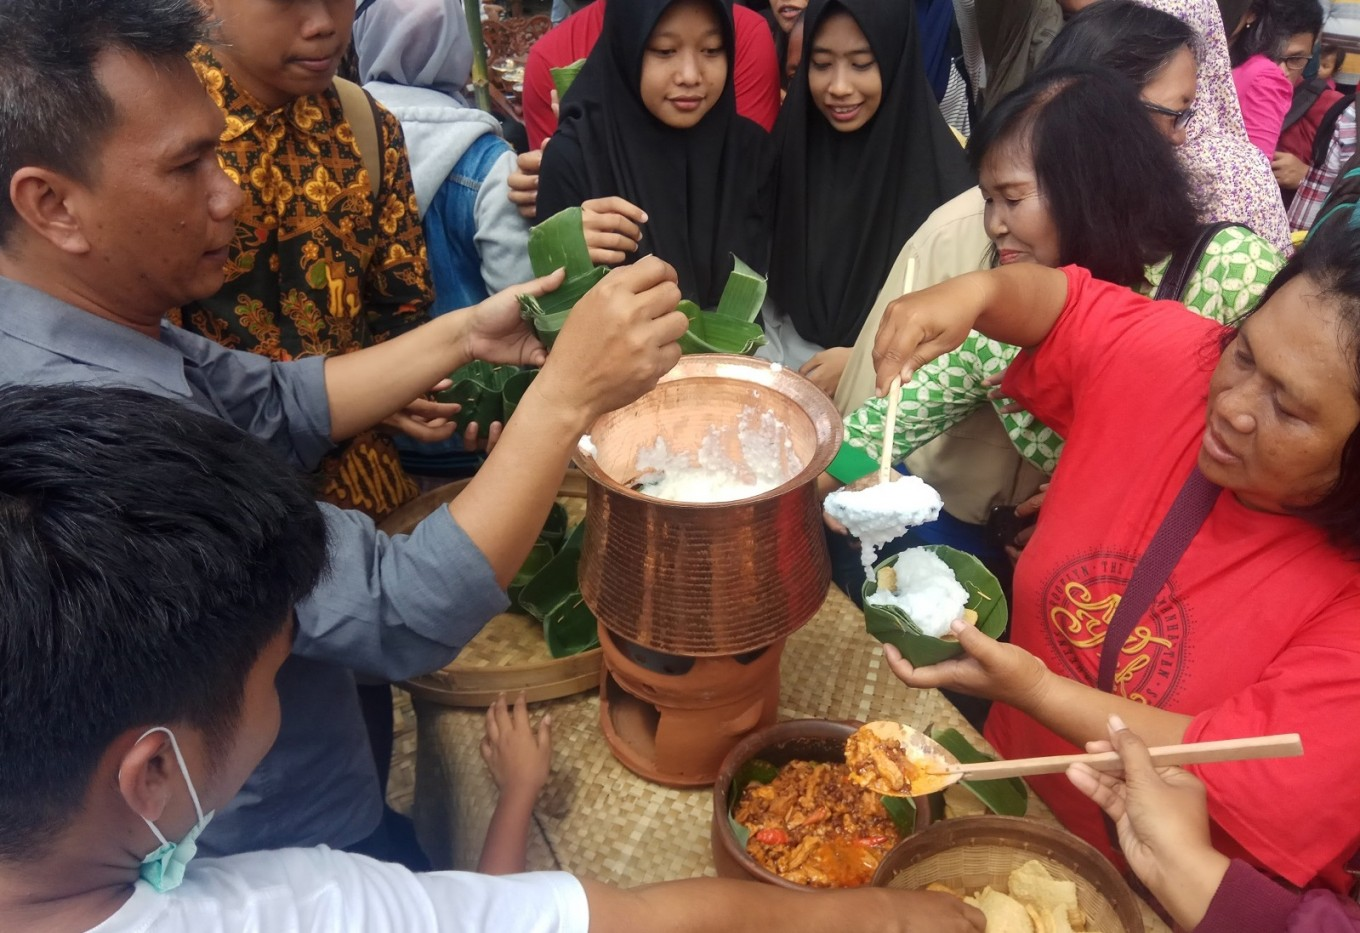 People line up for free 'jenang' at the festival held for celebrating the anniversary of Surakarta.